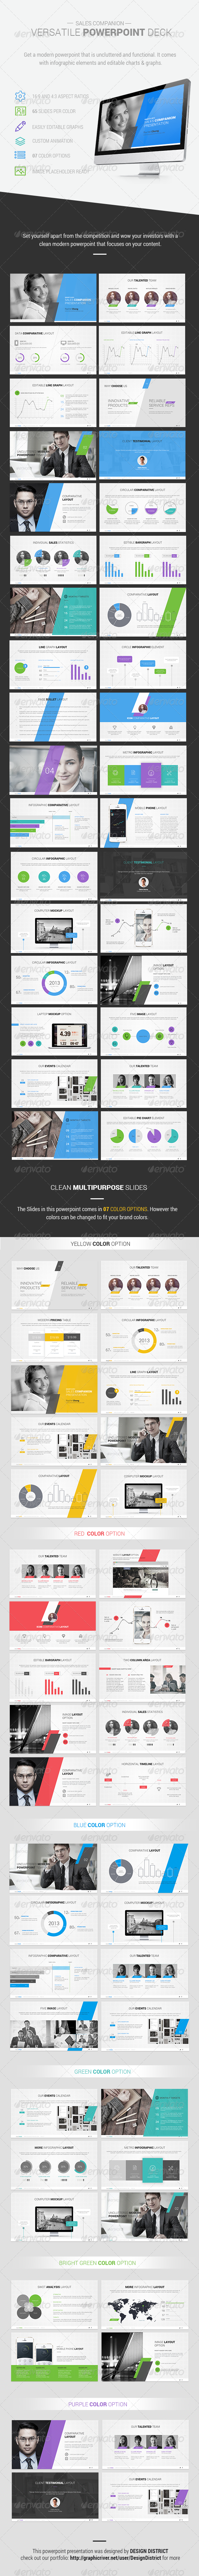 GraphicRiver Accentuate Powerpoint Presentation 7663452